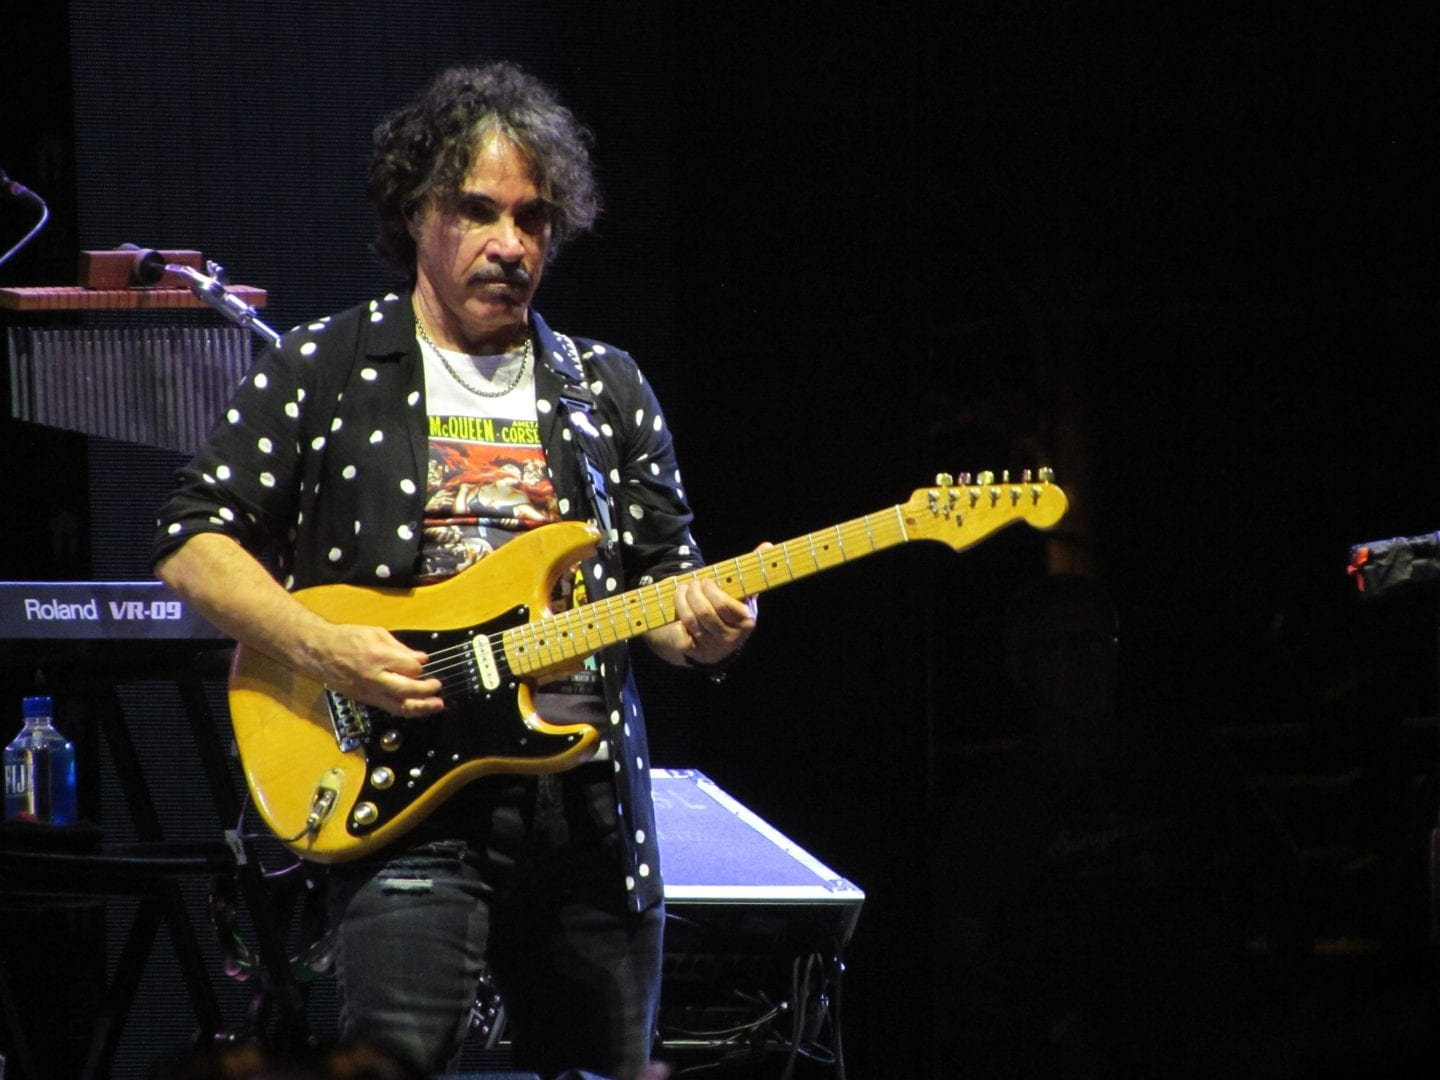 John Oates with his yellow electric guitar